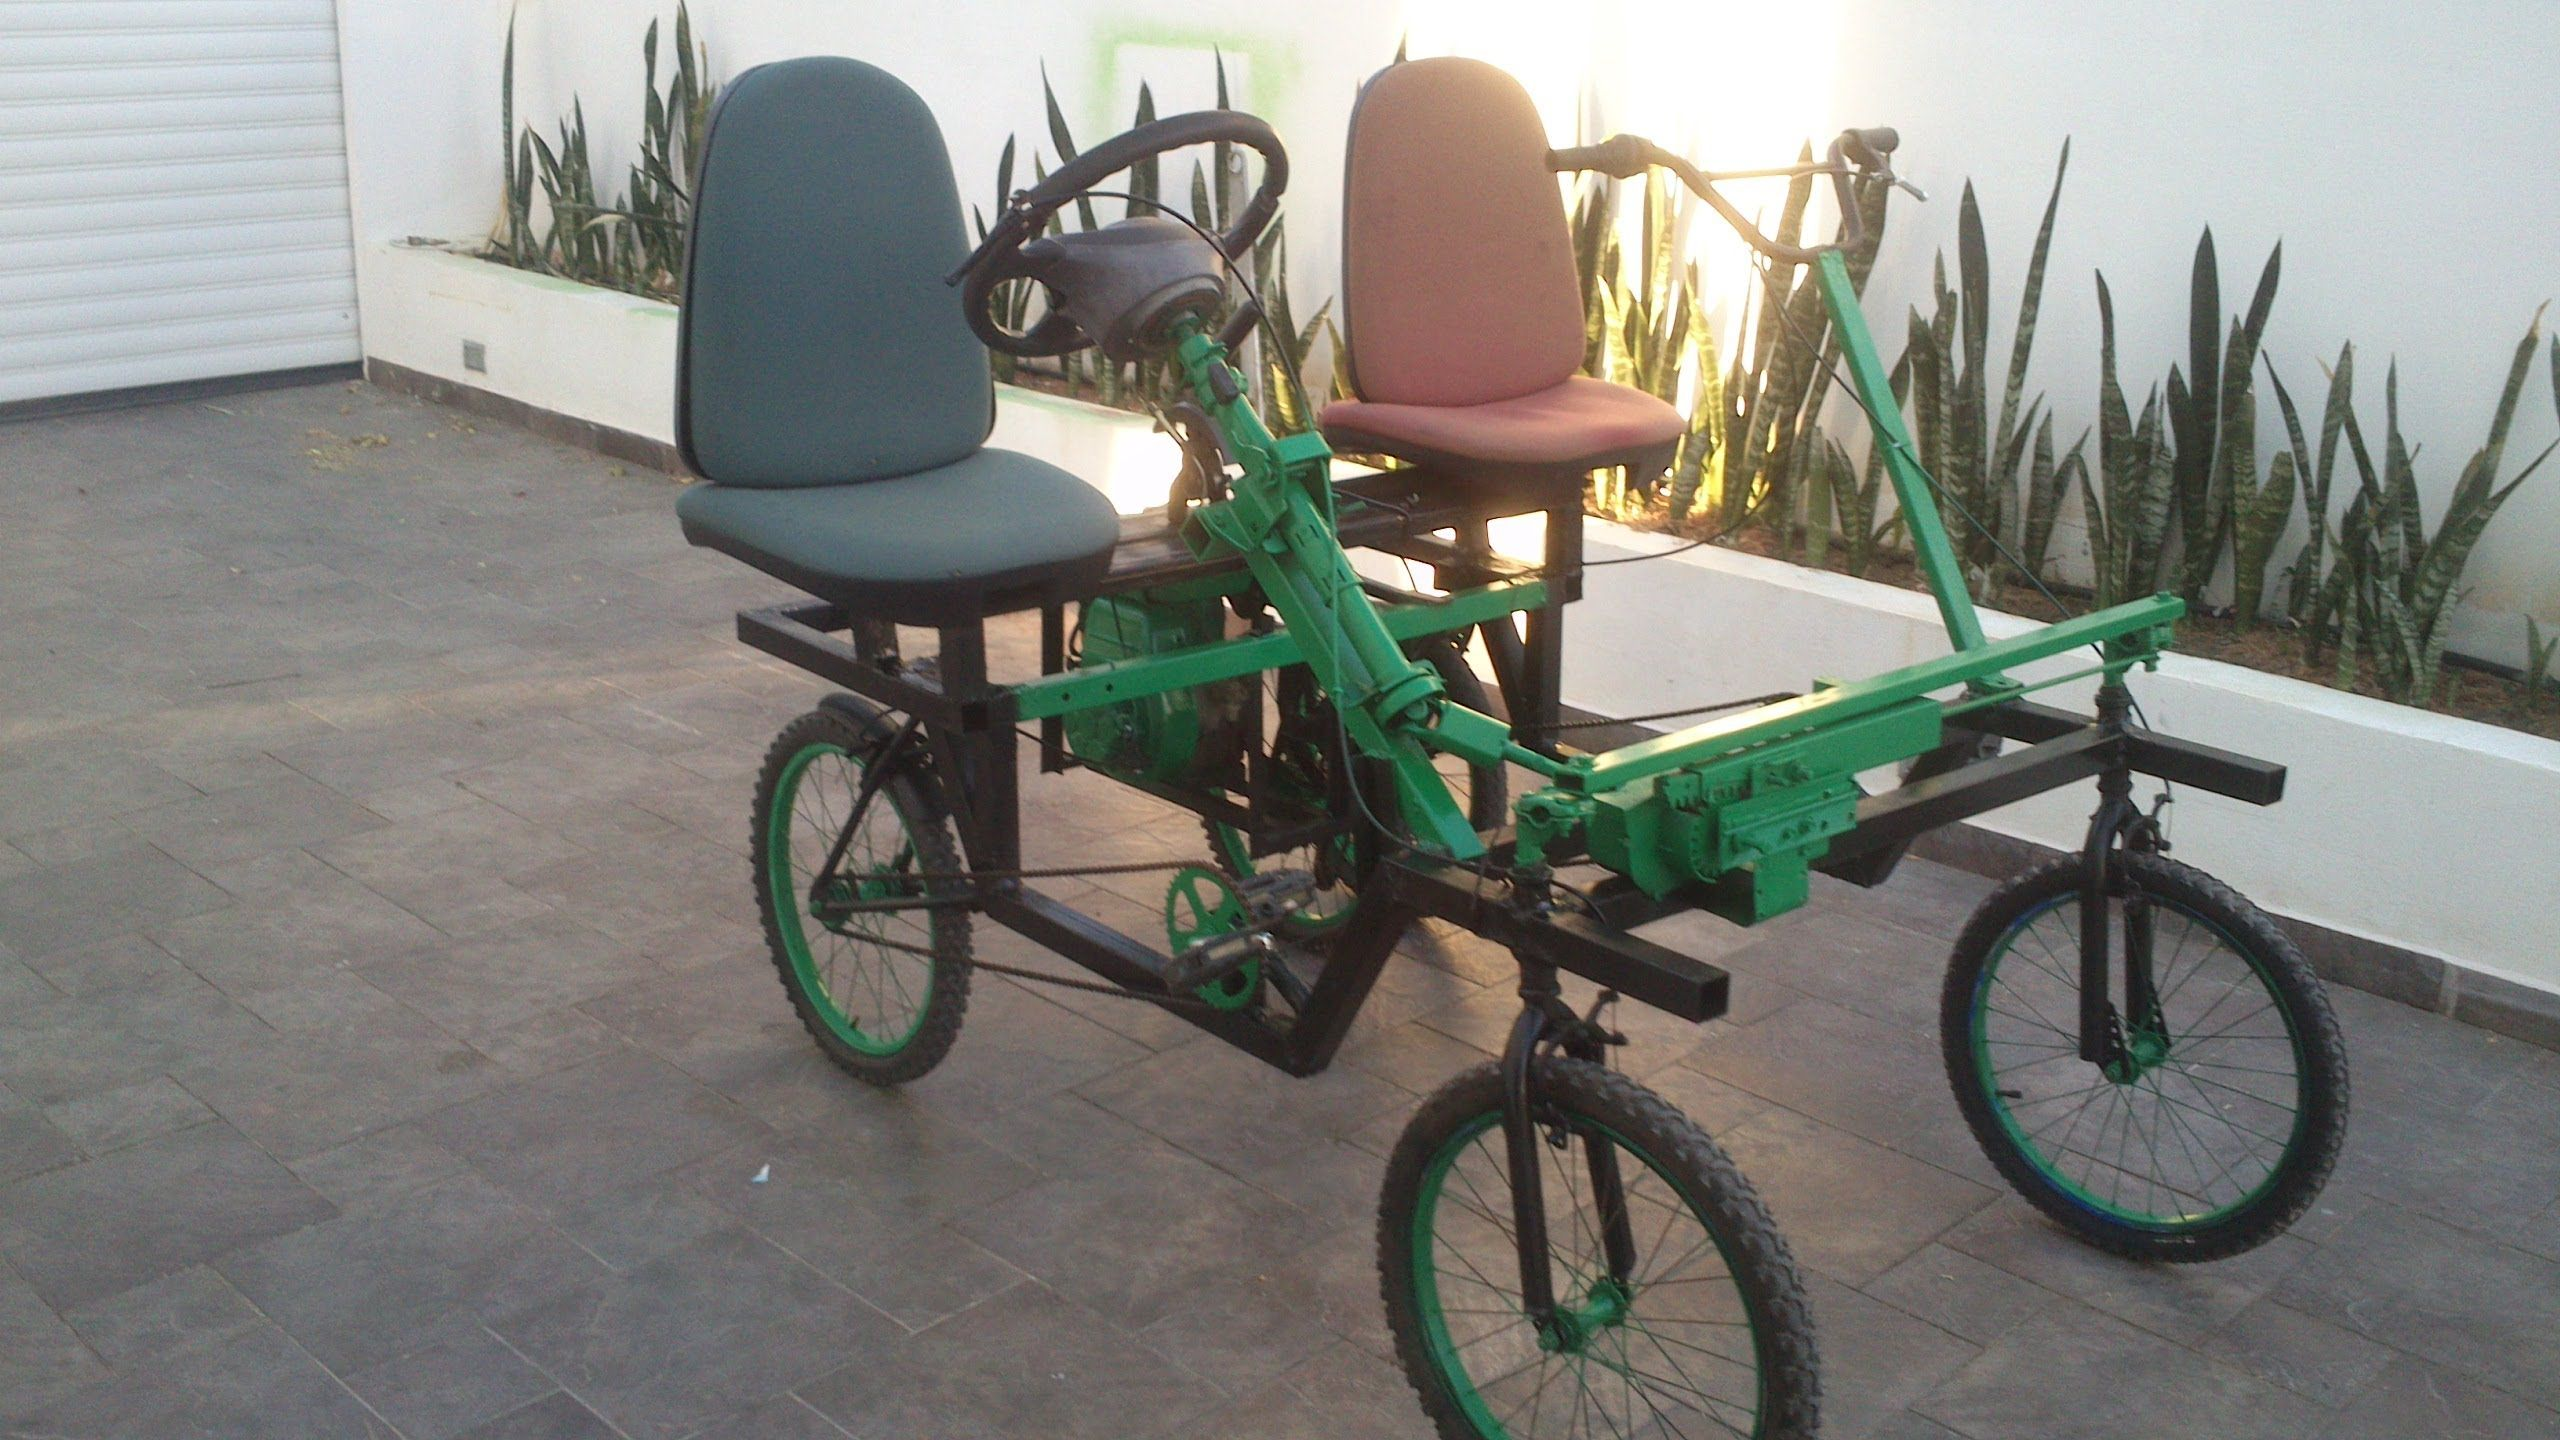 We need to build a quadricycle to pull the utility cart up hills!